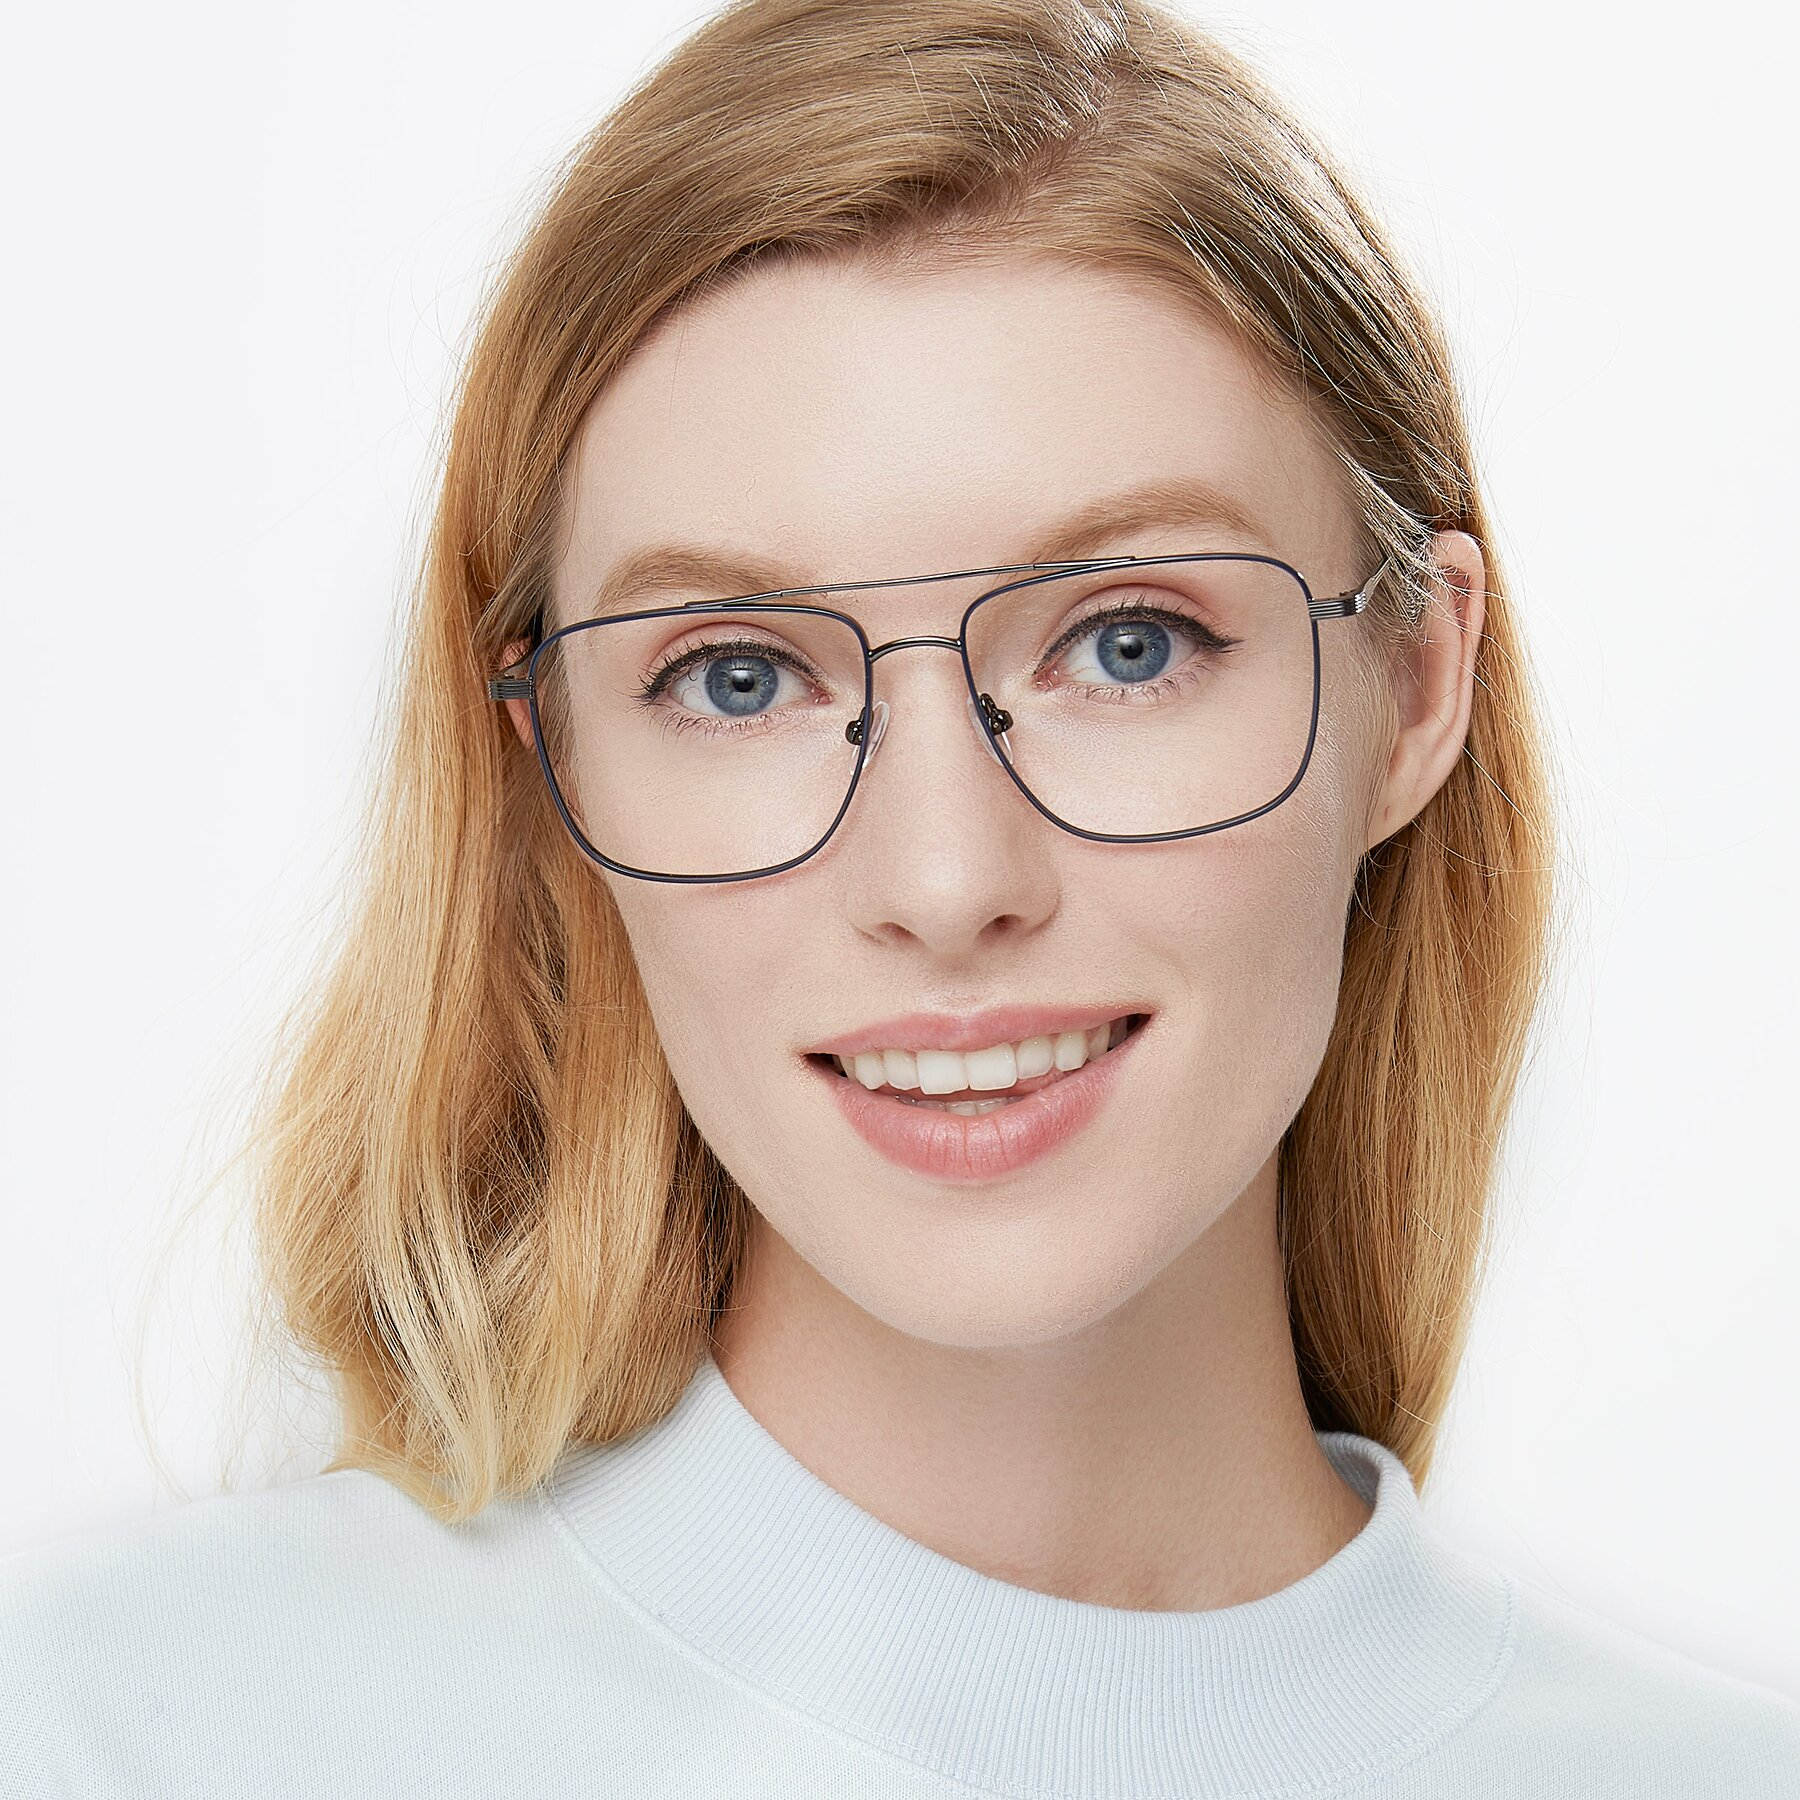 Women's lifestyle photography of 9519 in Ink Blue-Gun with Clear Eyeglass Lenses